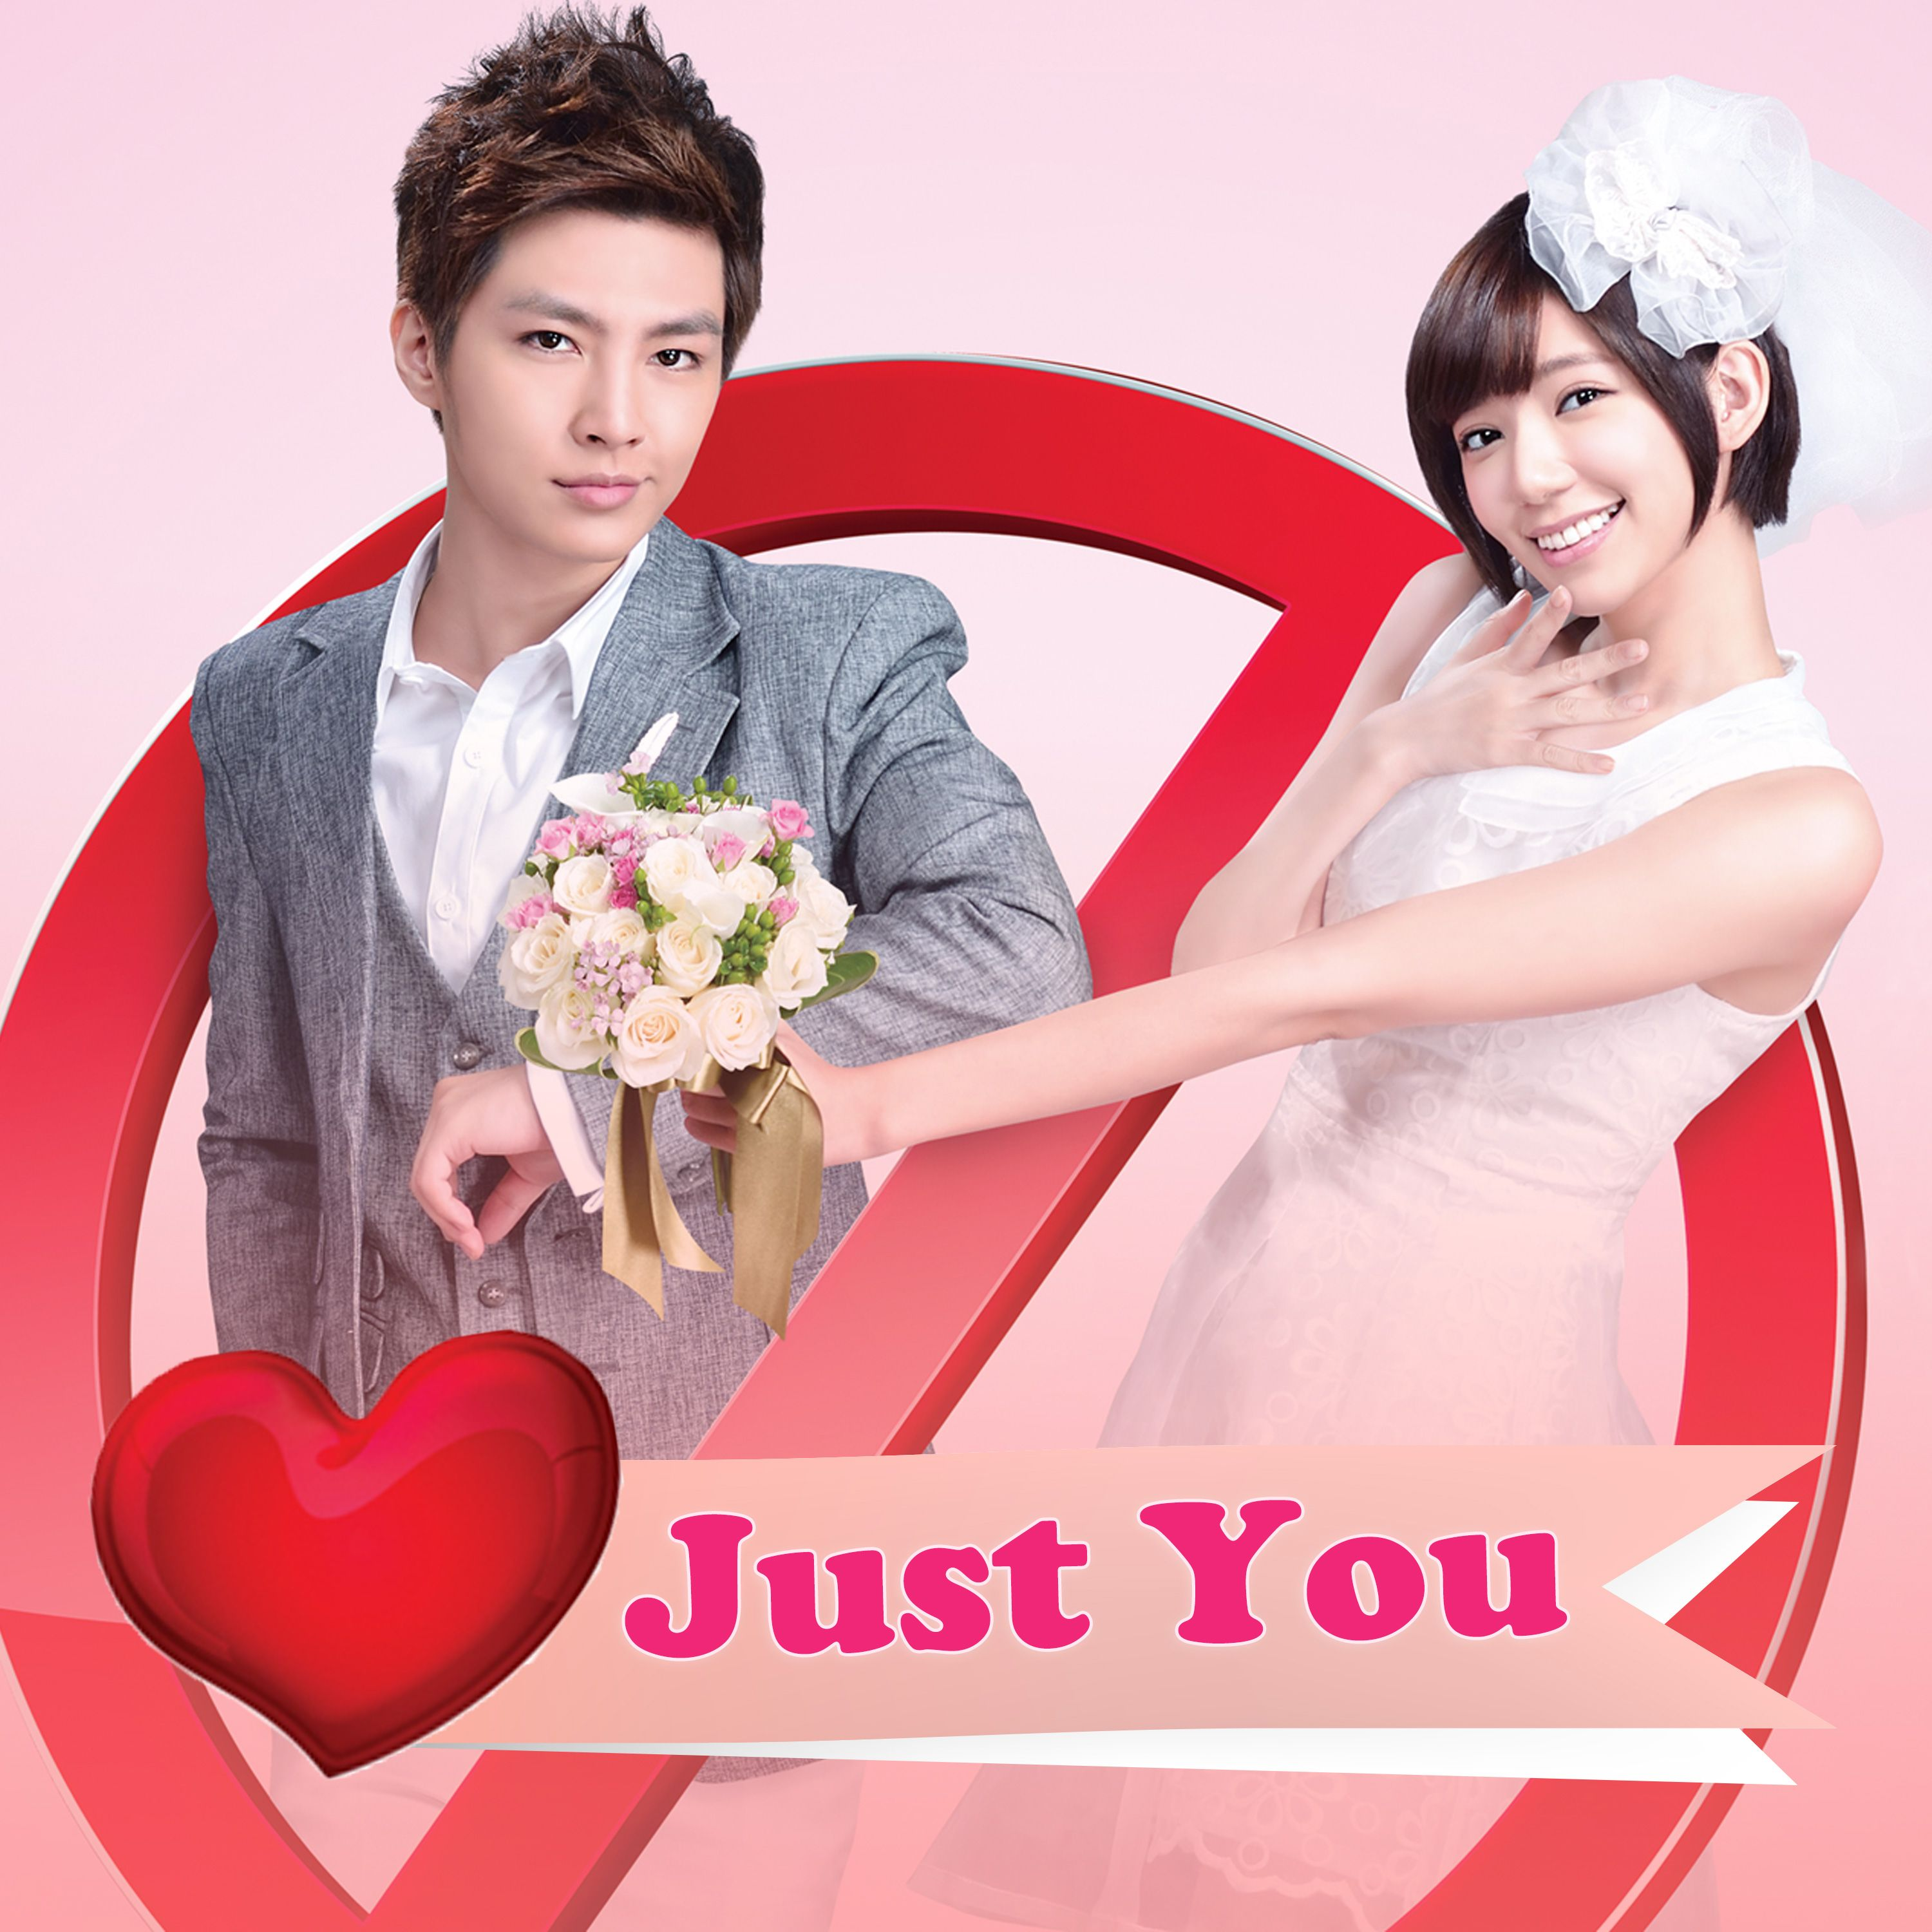 Just You Episode 1 - 就是要你愛上我 - Watch Full Episodes